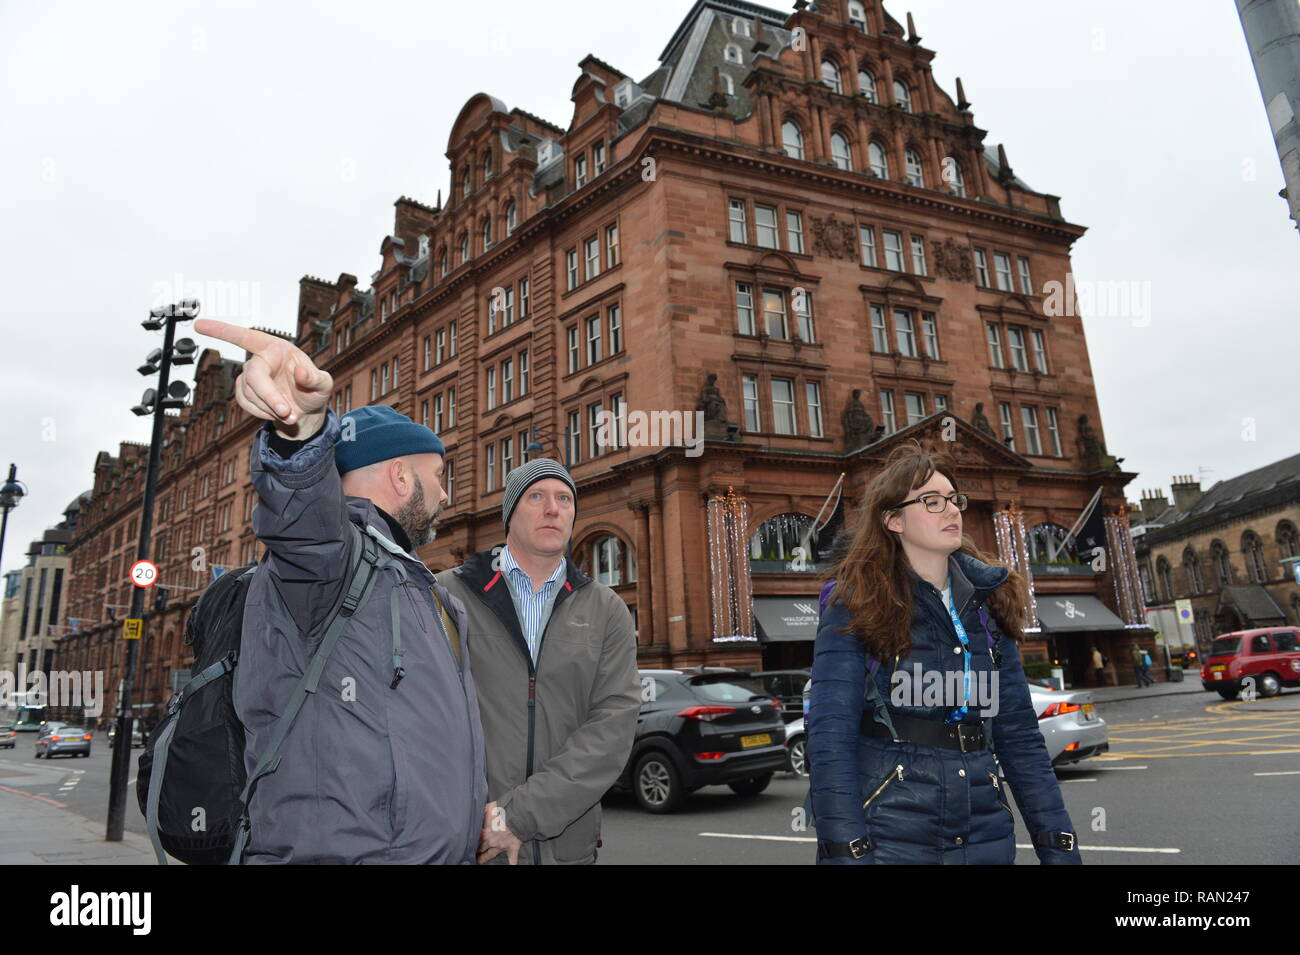 Edinburgh, Scotland, UK. 4th January, 2019. Public Health Minister Joe FitzPatrick joins the Edinburgh Access Practice Street Outreach Pharmacist on a walkabout around Edinburgh. The service provides essential primary health care for homeless patients (Left - Right: David Miller - Streetwork Councillor; Joe FitzPatrick - Public Health Minister; Lauren Gibson - Outreach Pharmacist). Edinburgh, UK - 4th January 2019. Credit: Colin Fisher/Alamy Live News - Stock Image